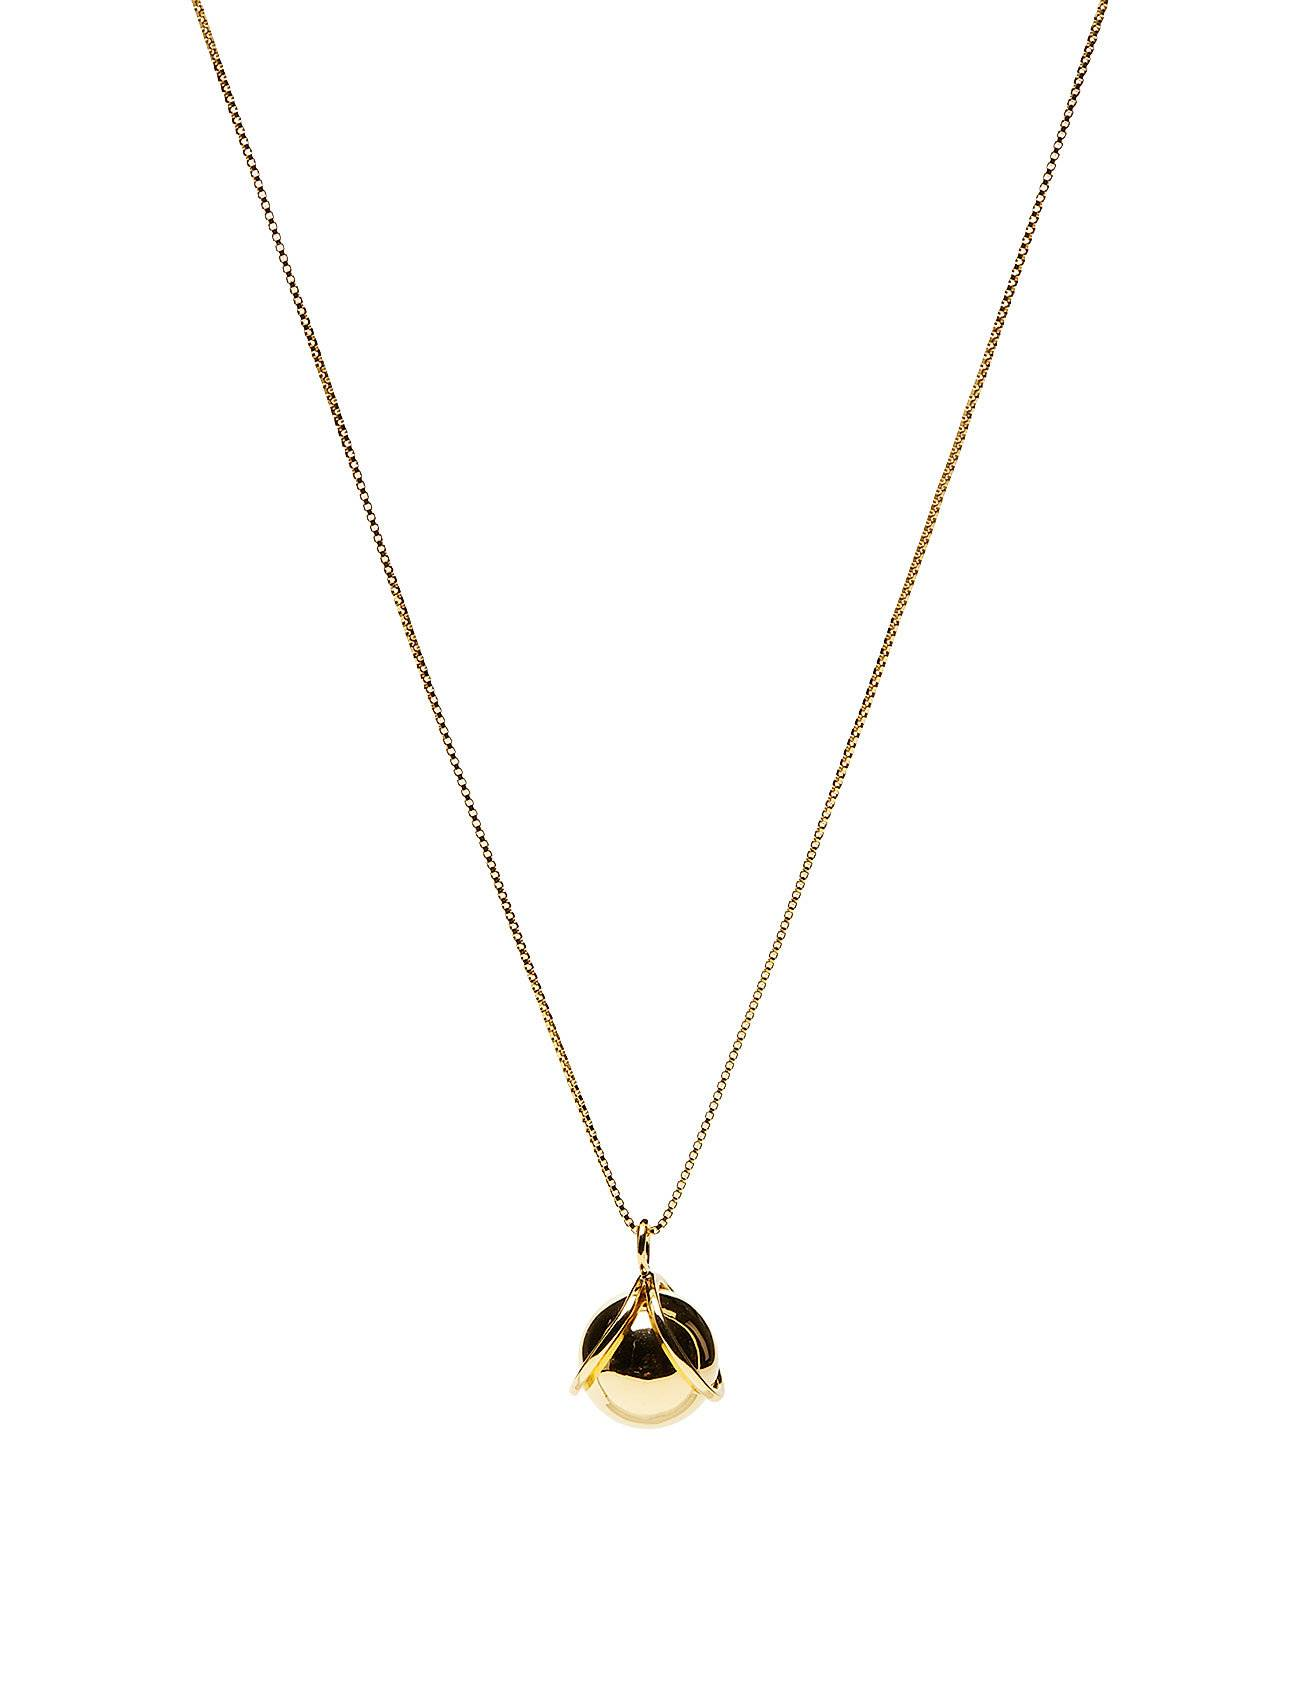 Syster P Planet Necklace Gold Gold Accessories Jewellery Necklaces Dainty Necklaces Kulta Syster P